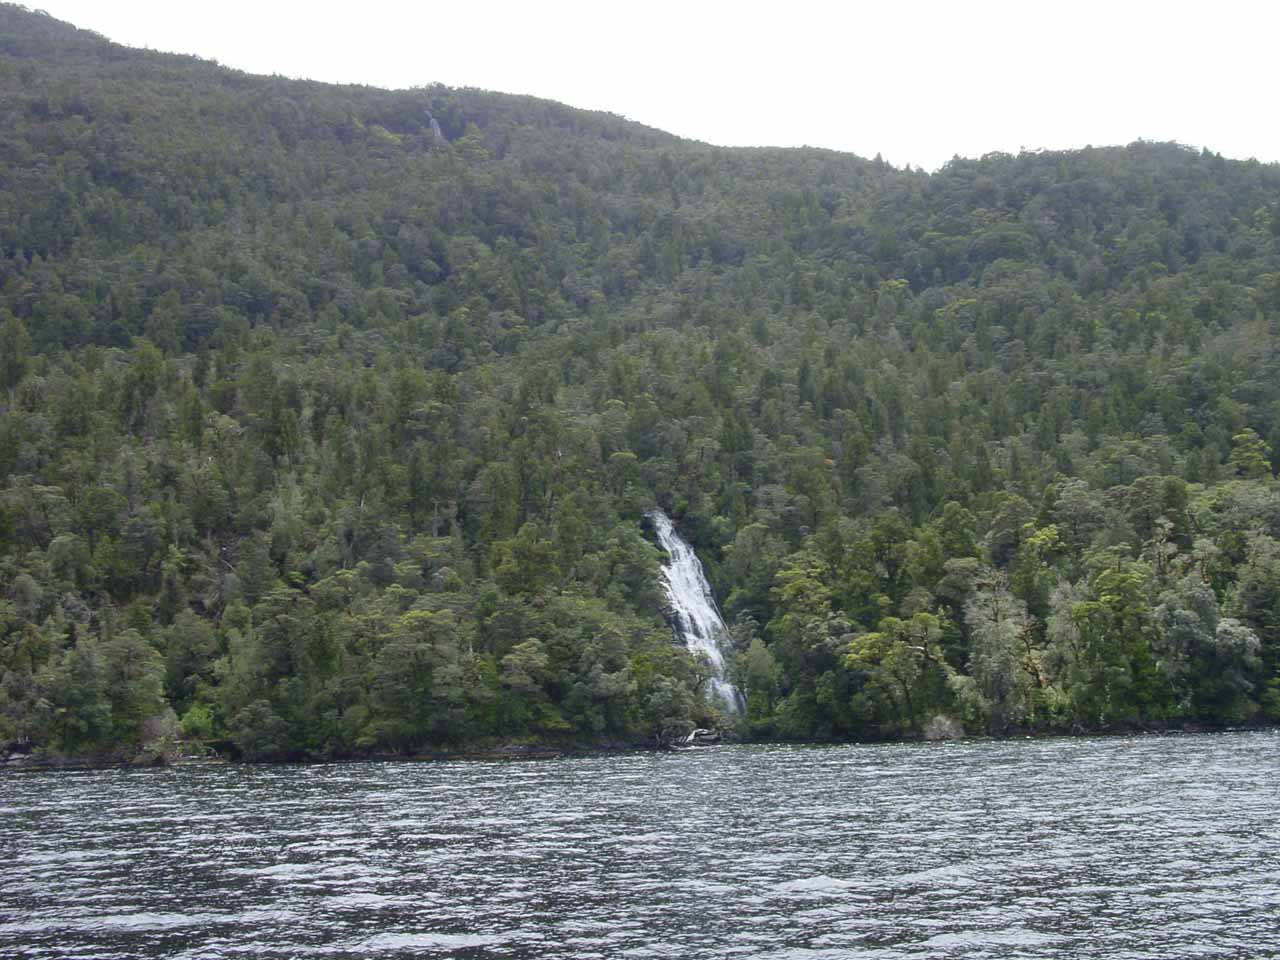 Contextual view of the waterfall by the Grono Bay section of the Doubtful Sound